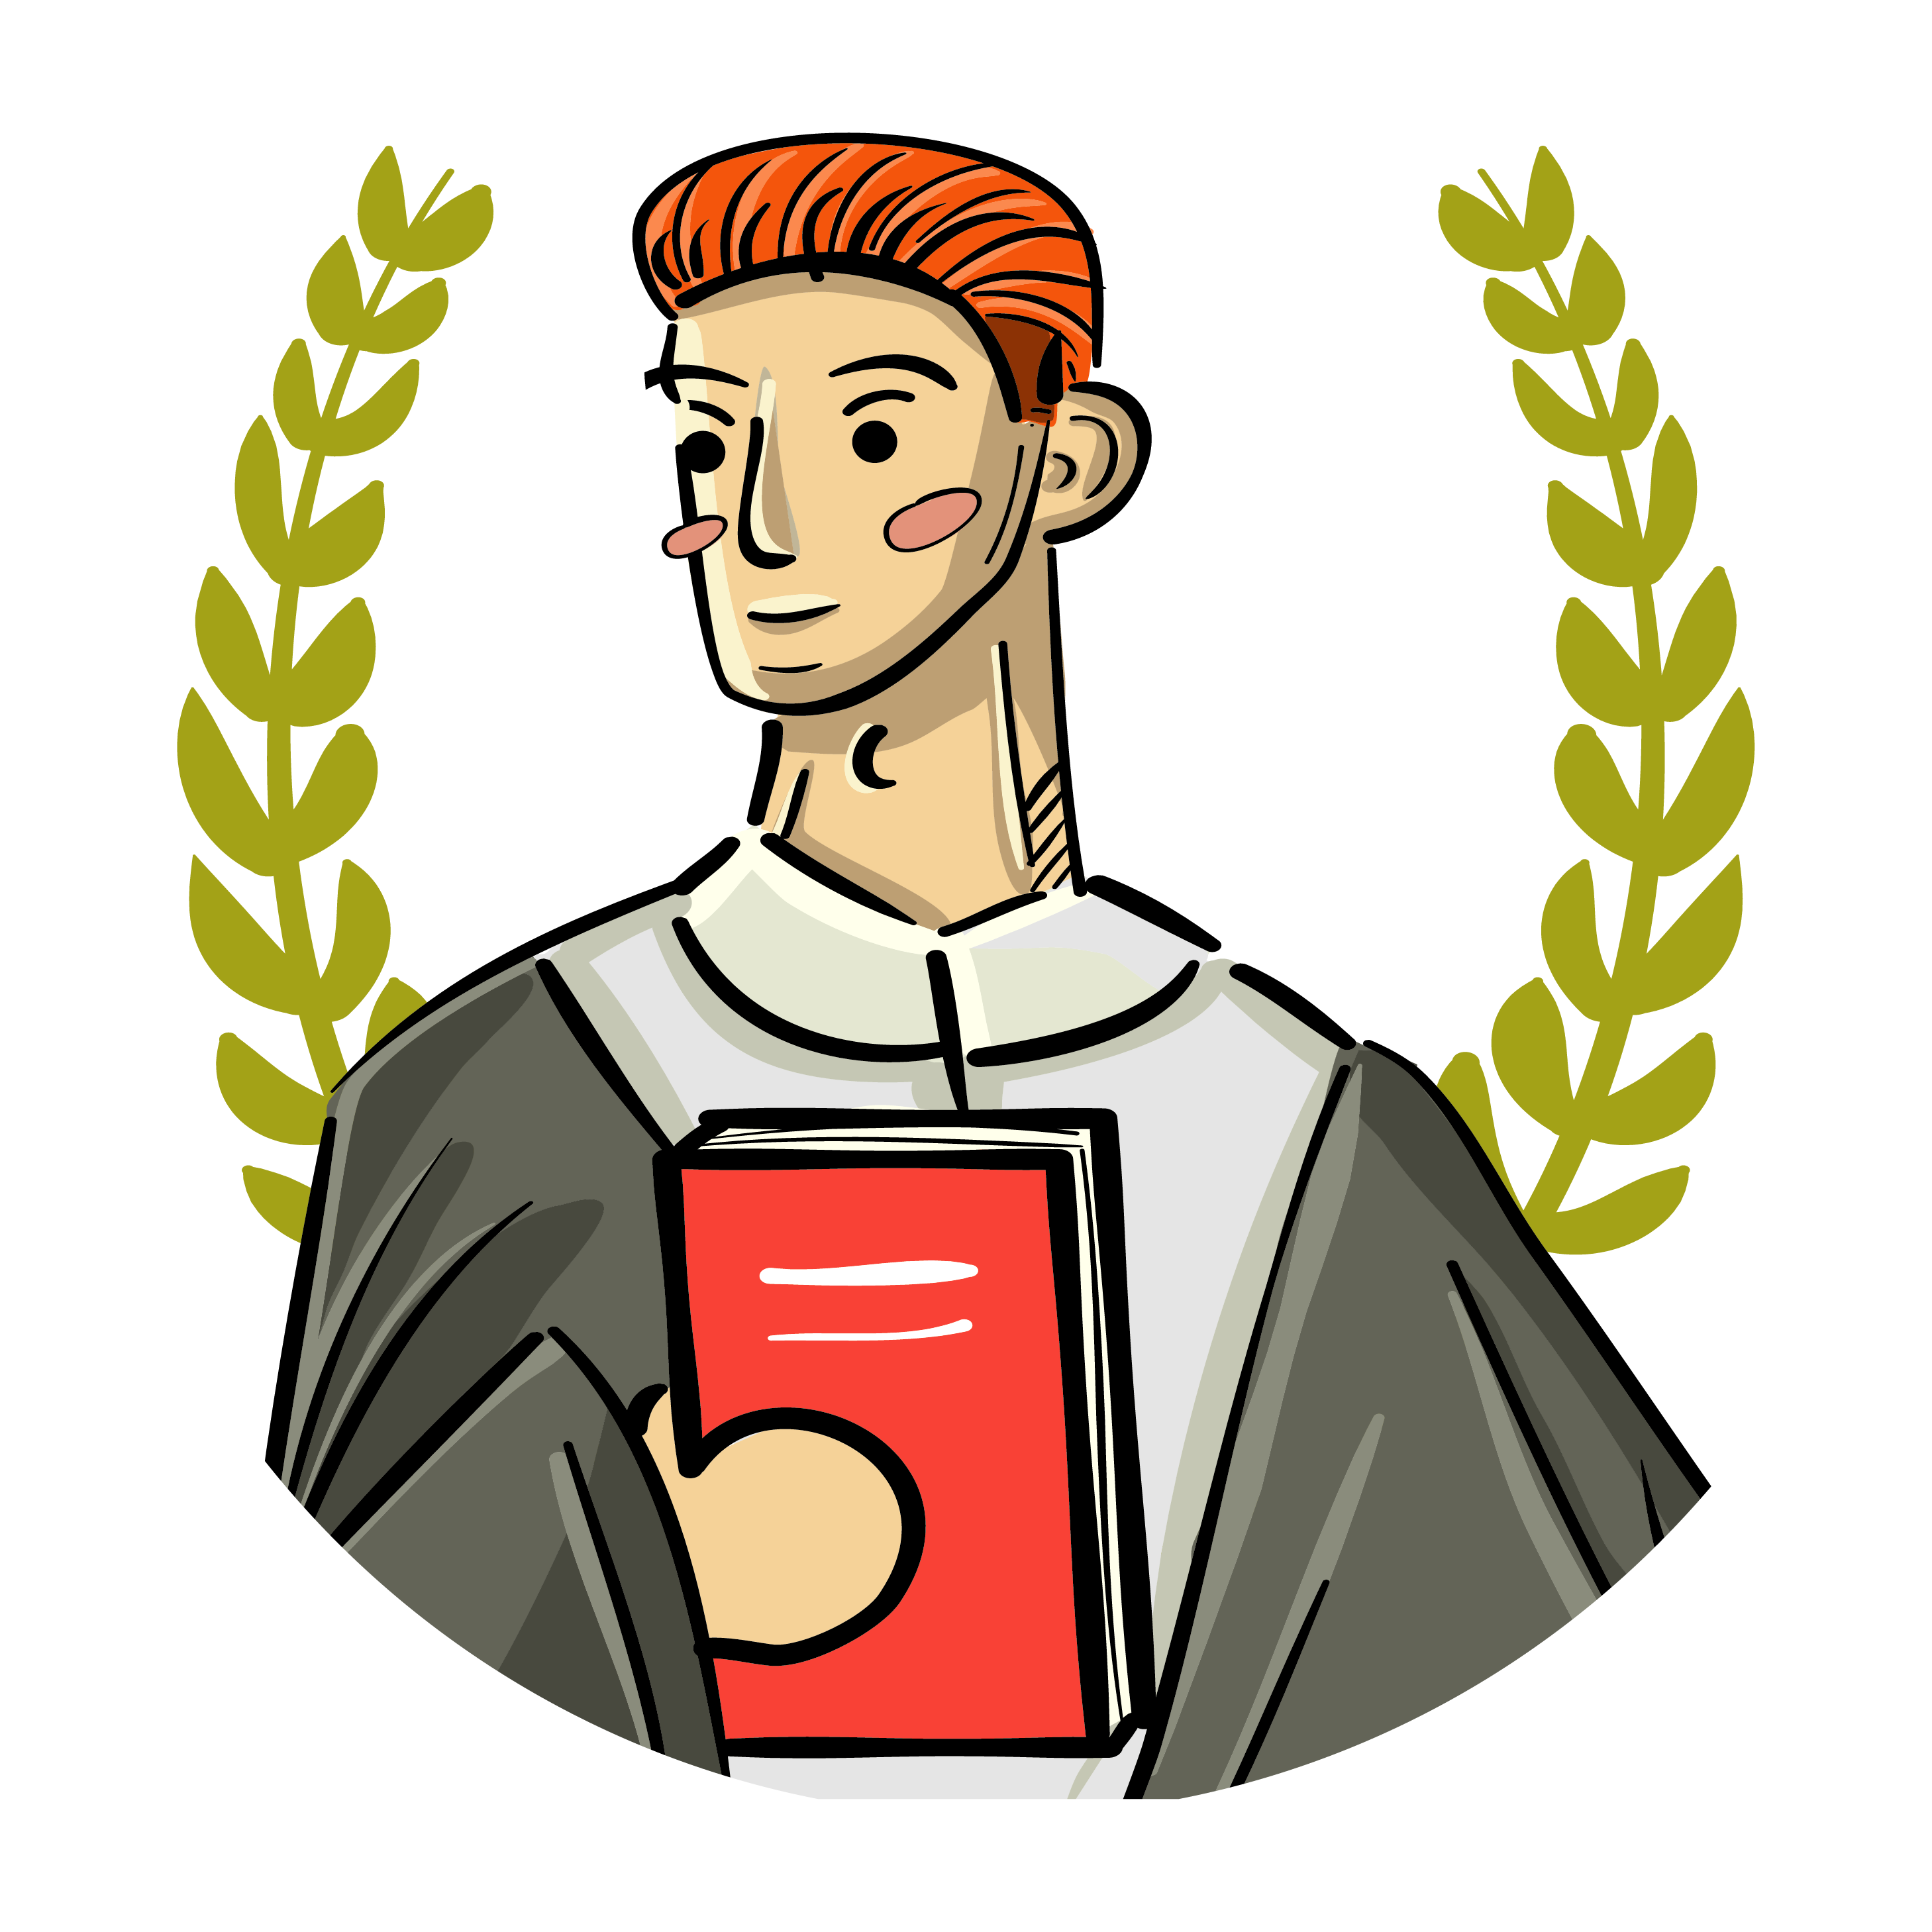 Book Icon Vector Male Student Or Teacher Person Profile: Download Free Vector Art, Stock